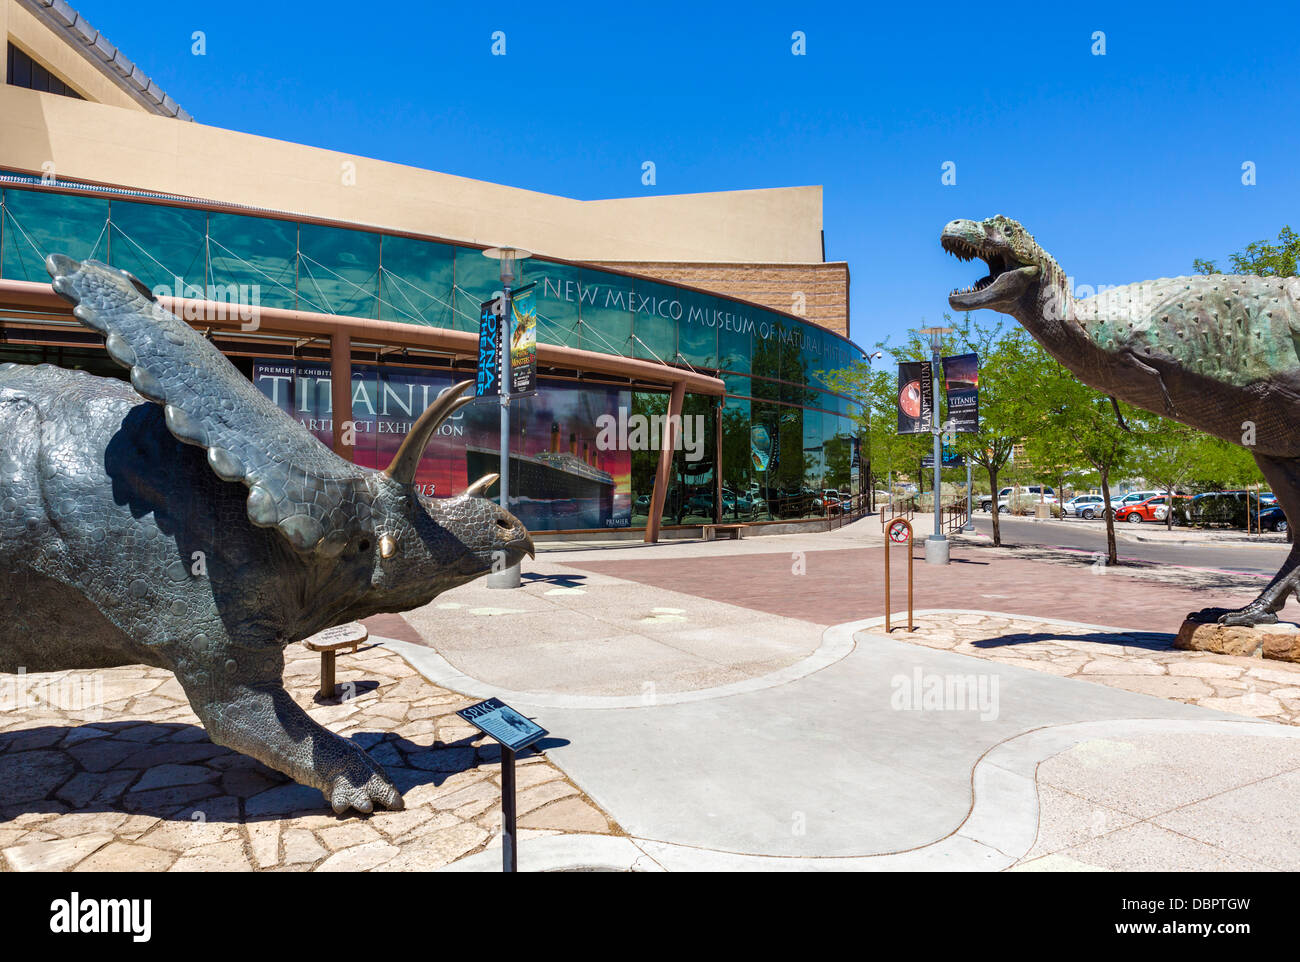 New Mexico Museum of Natural History and Science, Albuquerque, New Mexico, USA - Stock Image